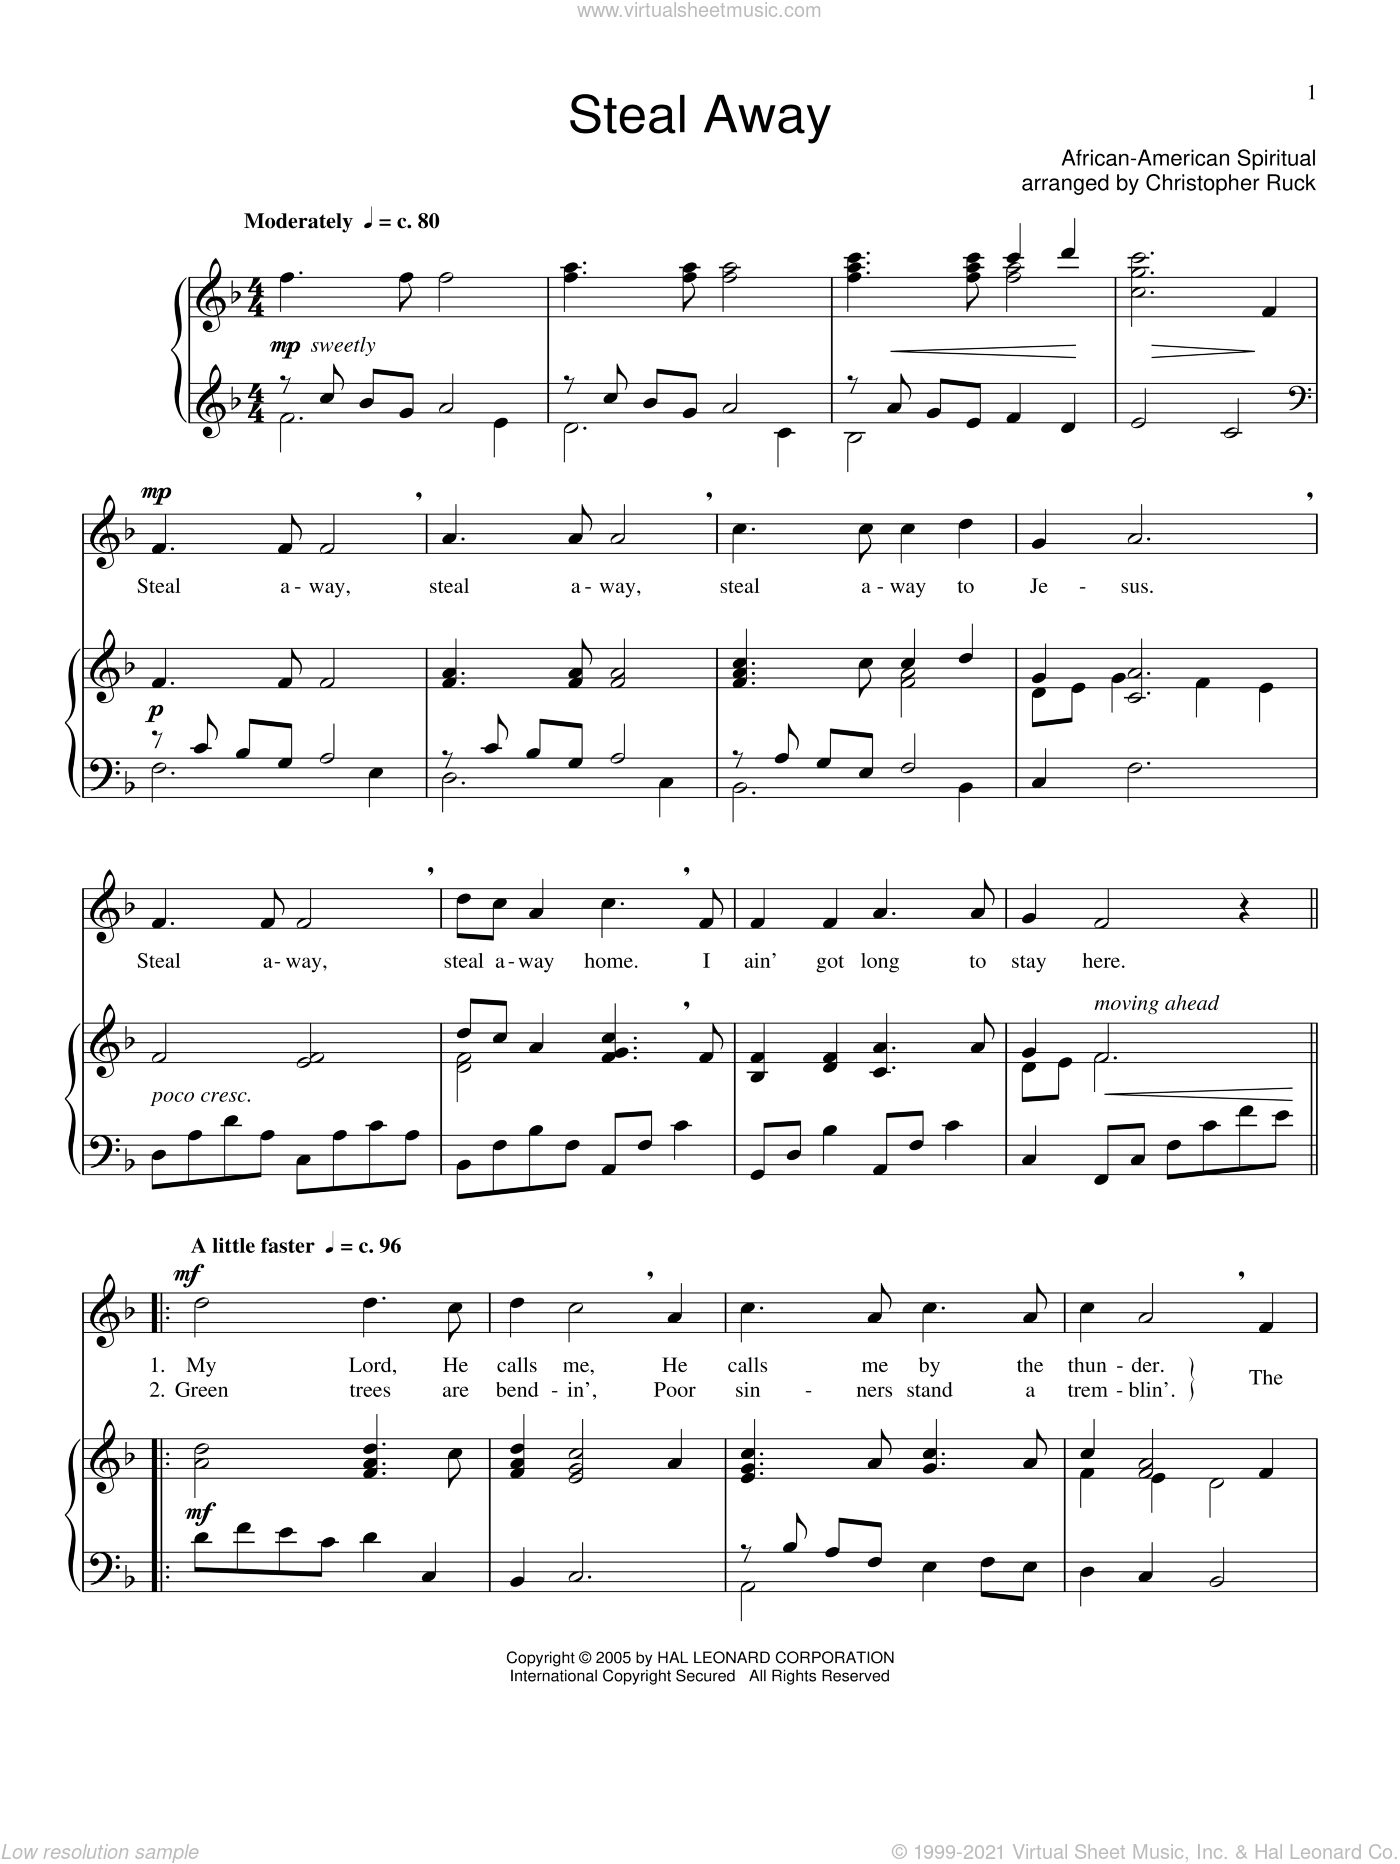 Steal Away sheet music for voice and piano. Score Image Preview.